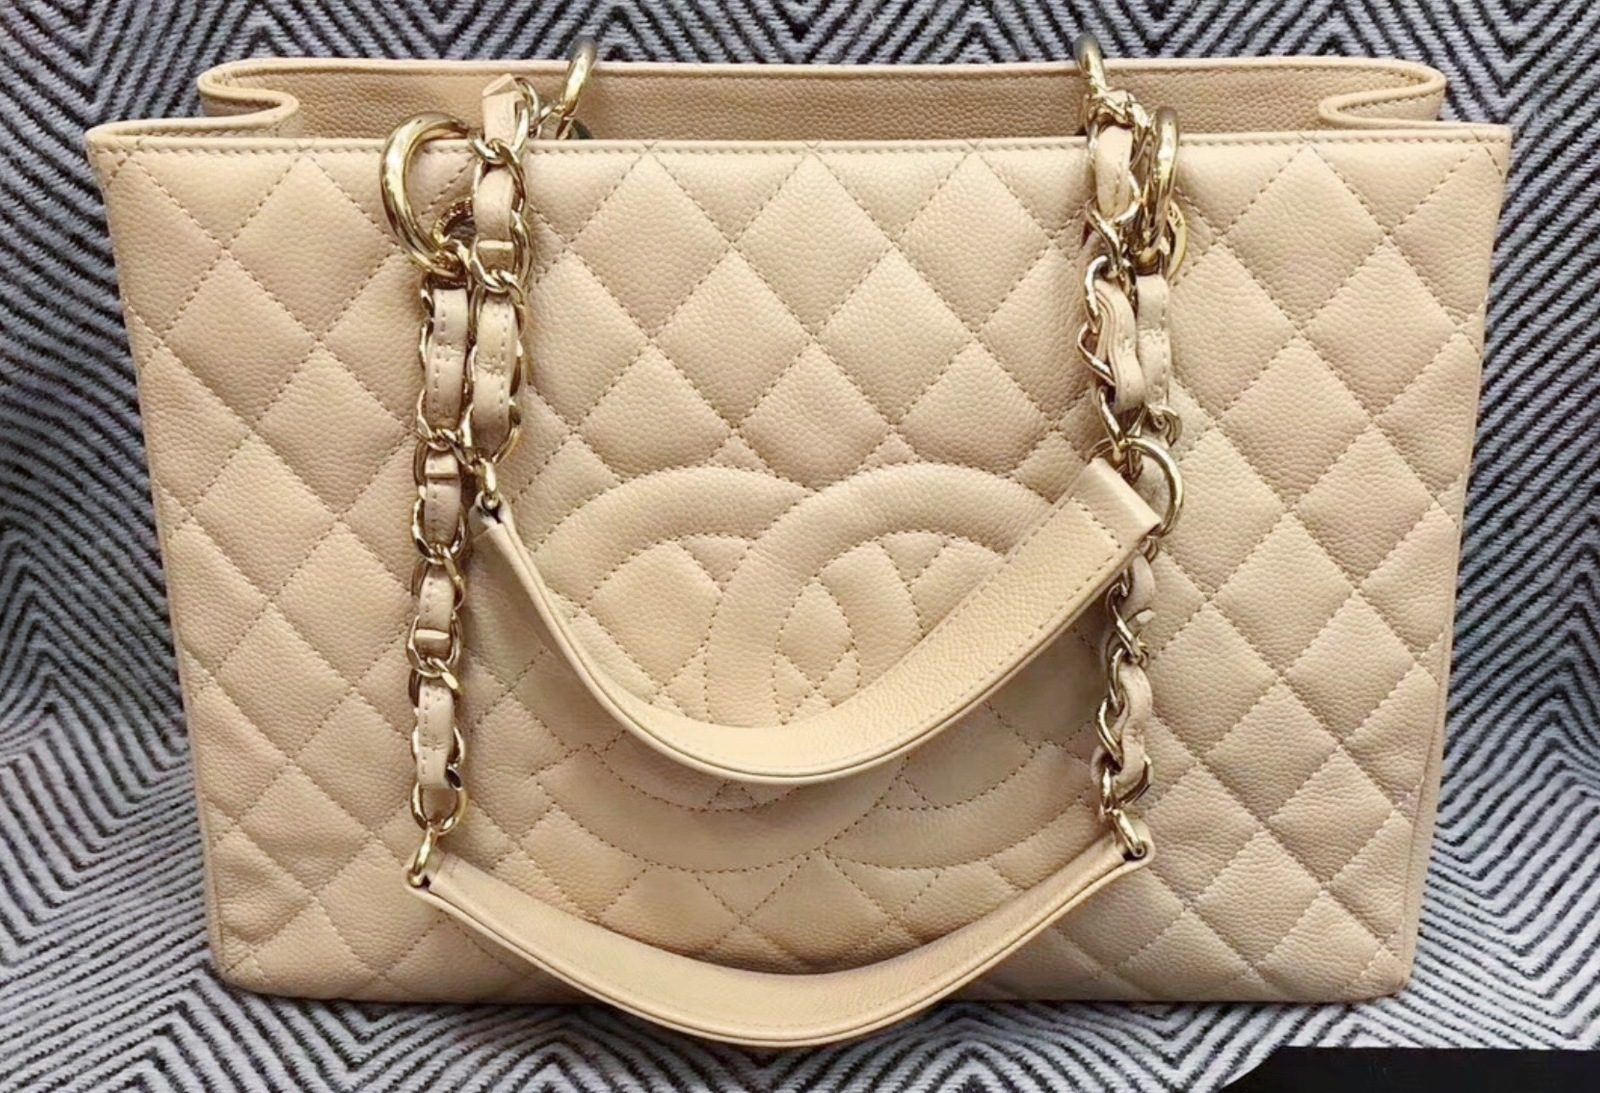 abe0d703a16f AUTHENTIC CHANEL QUILTED CAVIAR GST GRAND SHOPPING TOTE BAG BEIGE ...